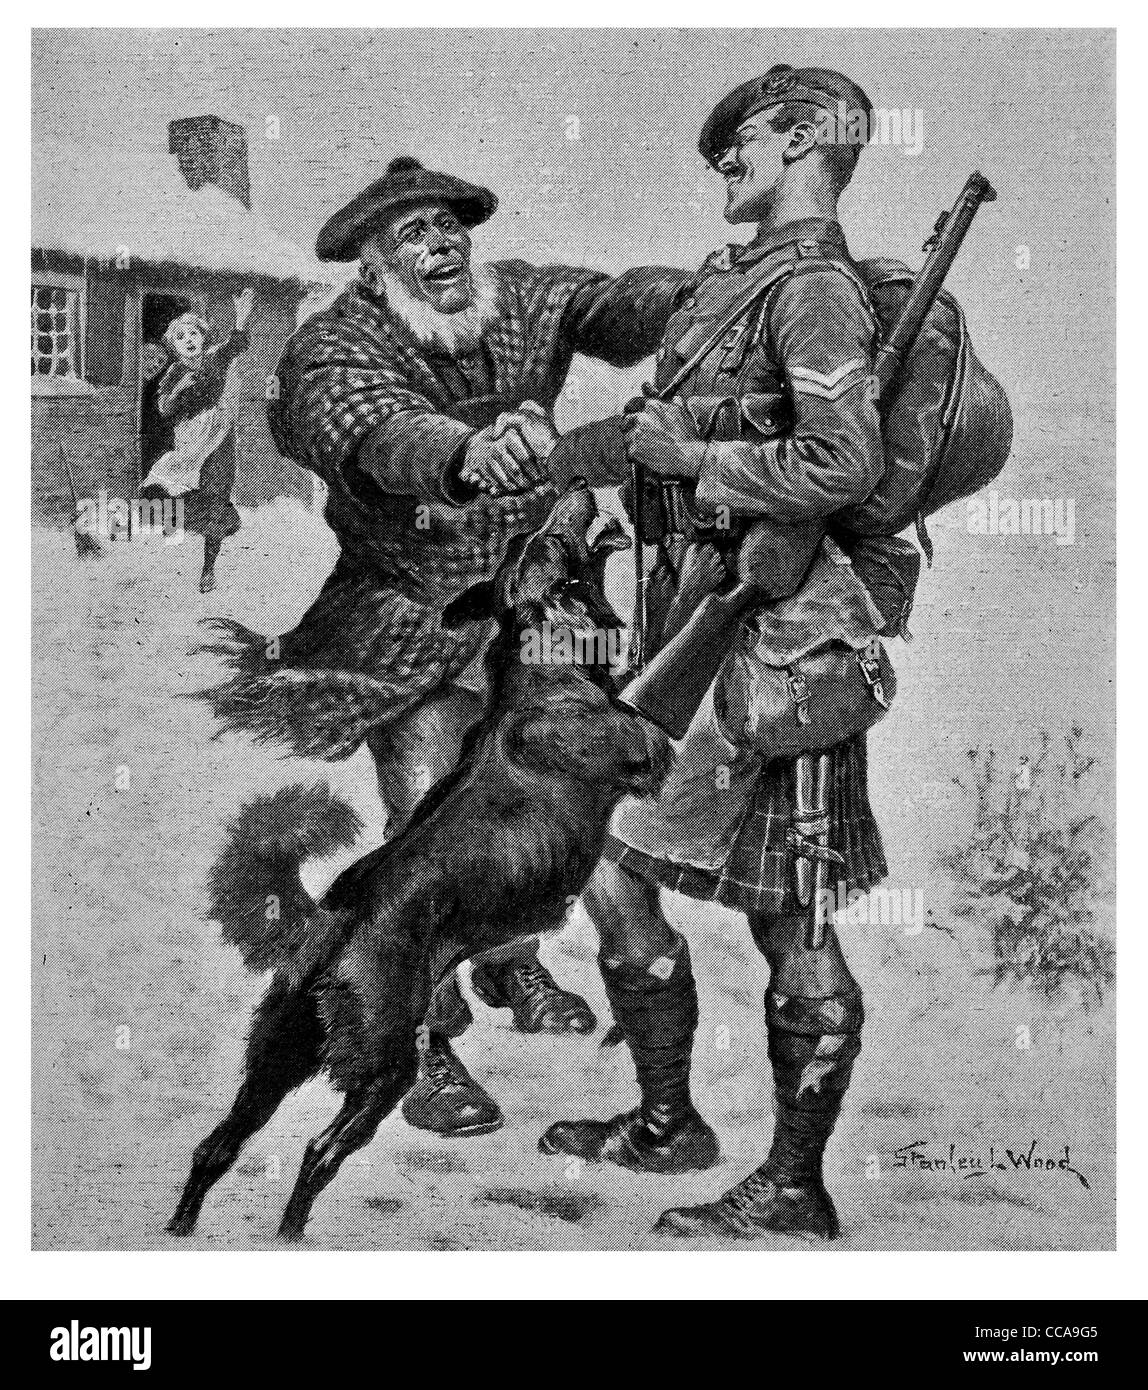 Welcome home 1917 Highland Scots soldier New Year Christmas family winter snow Scotland happy pet dog rifle kilt present festive Stock Photo